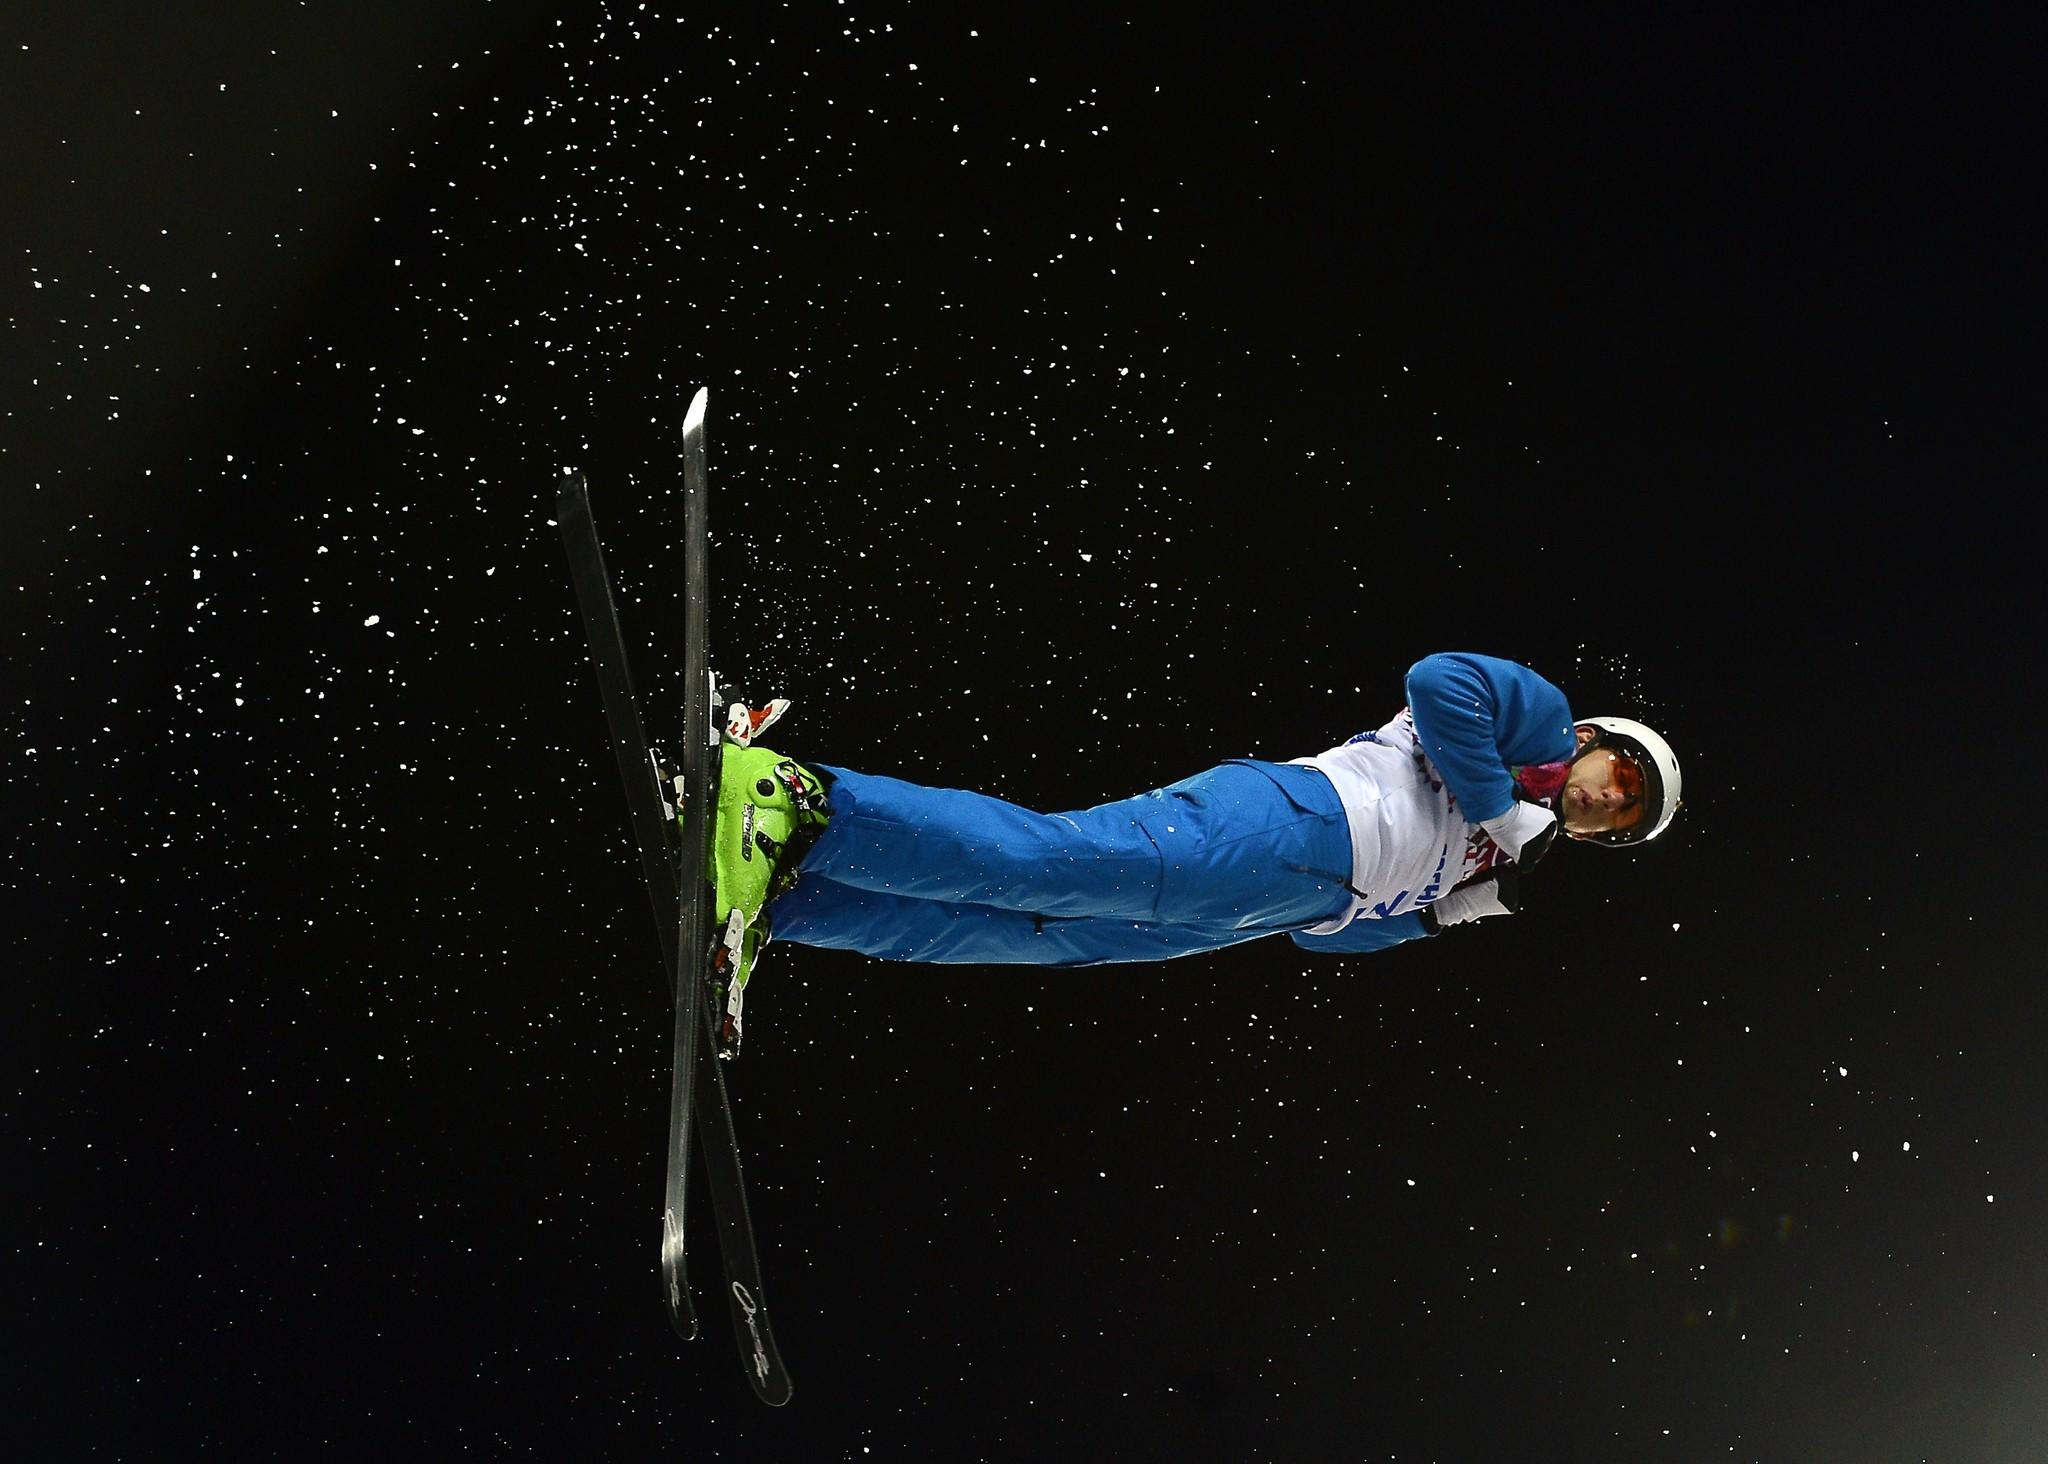 Belarus' Anton Kushnir competes in the Men's Freestyle Skiing Aerials finals.